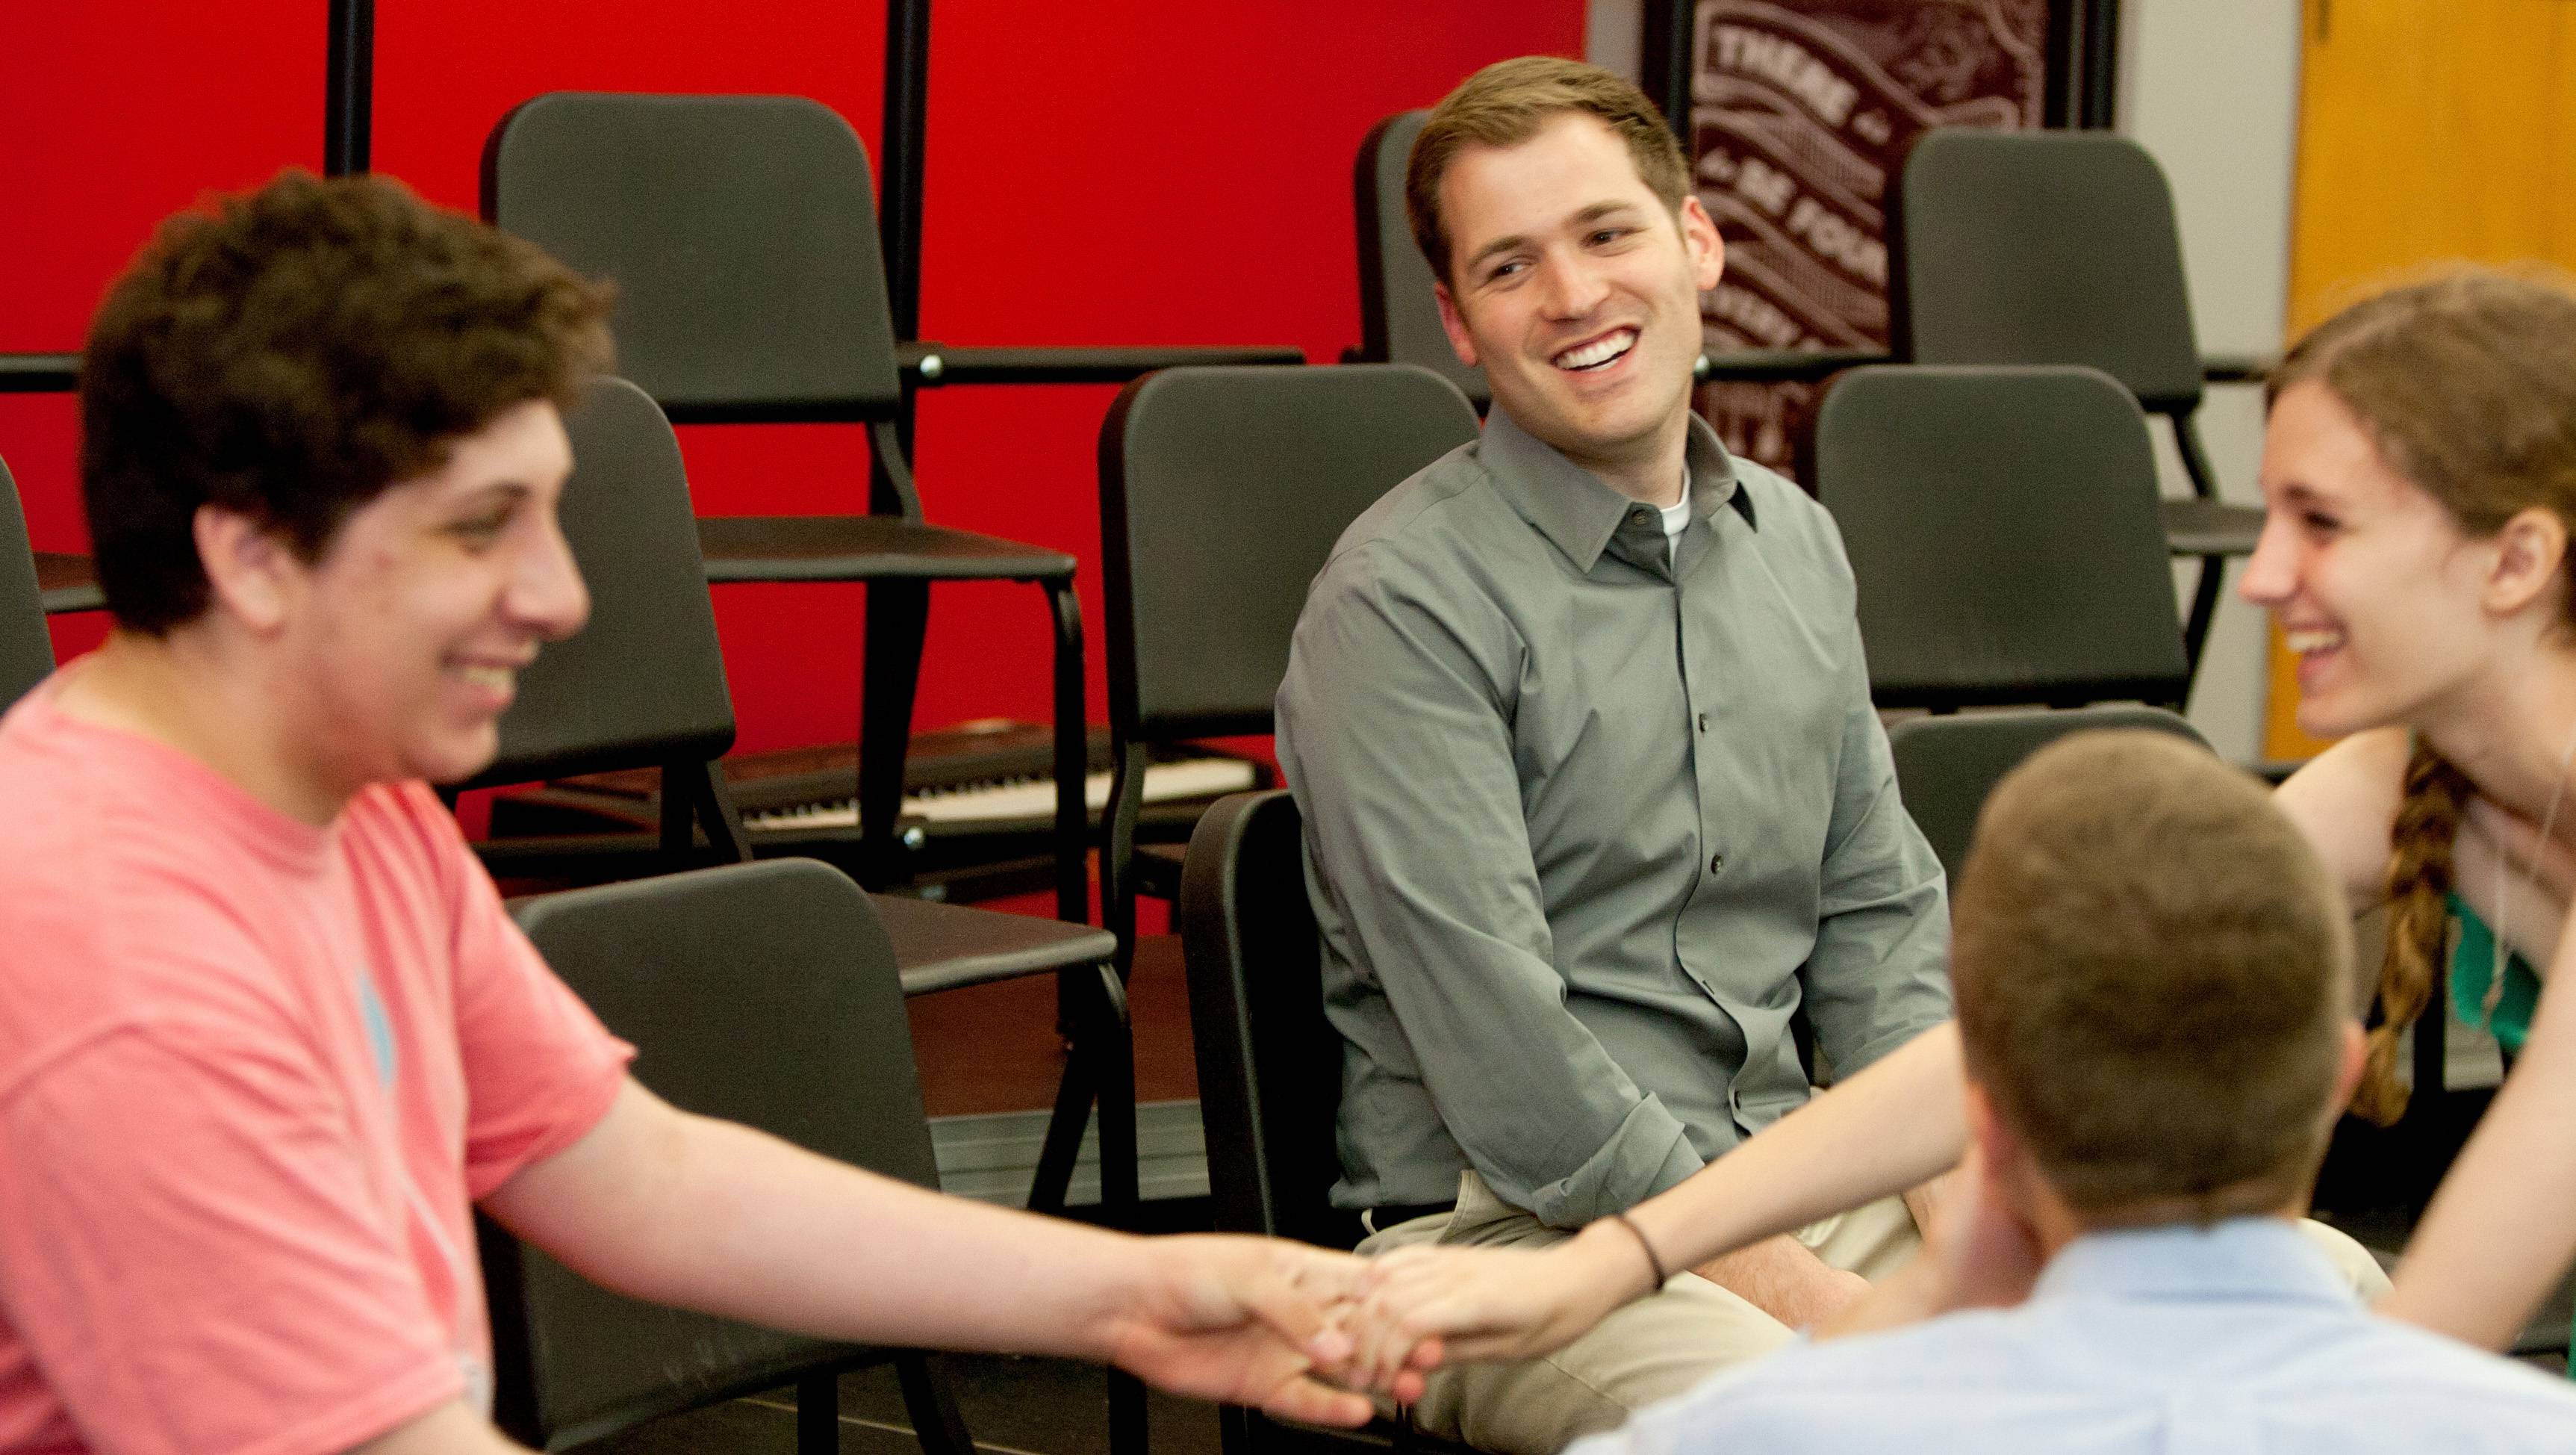 For two consecutive years, Glenbard East choir director Brandon Catt, center, has been nominated for the Music Educator Award given by the Grammy Foundation and the Recording Academy. He recently met with students Frank Cesario, Luke Young and Rachel Callaly.